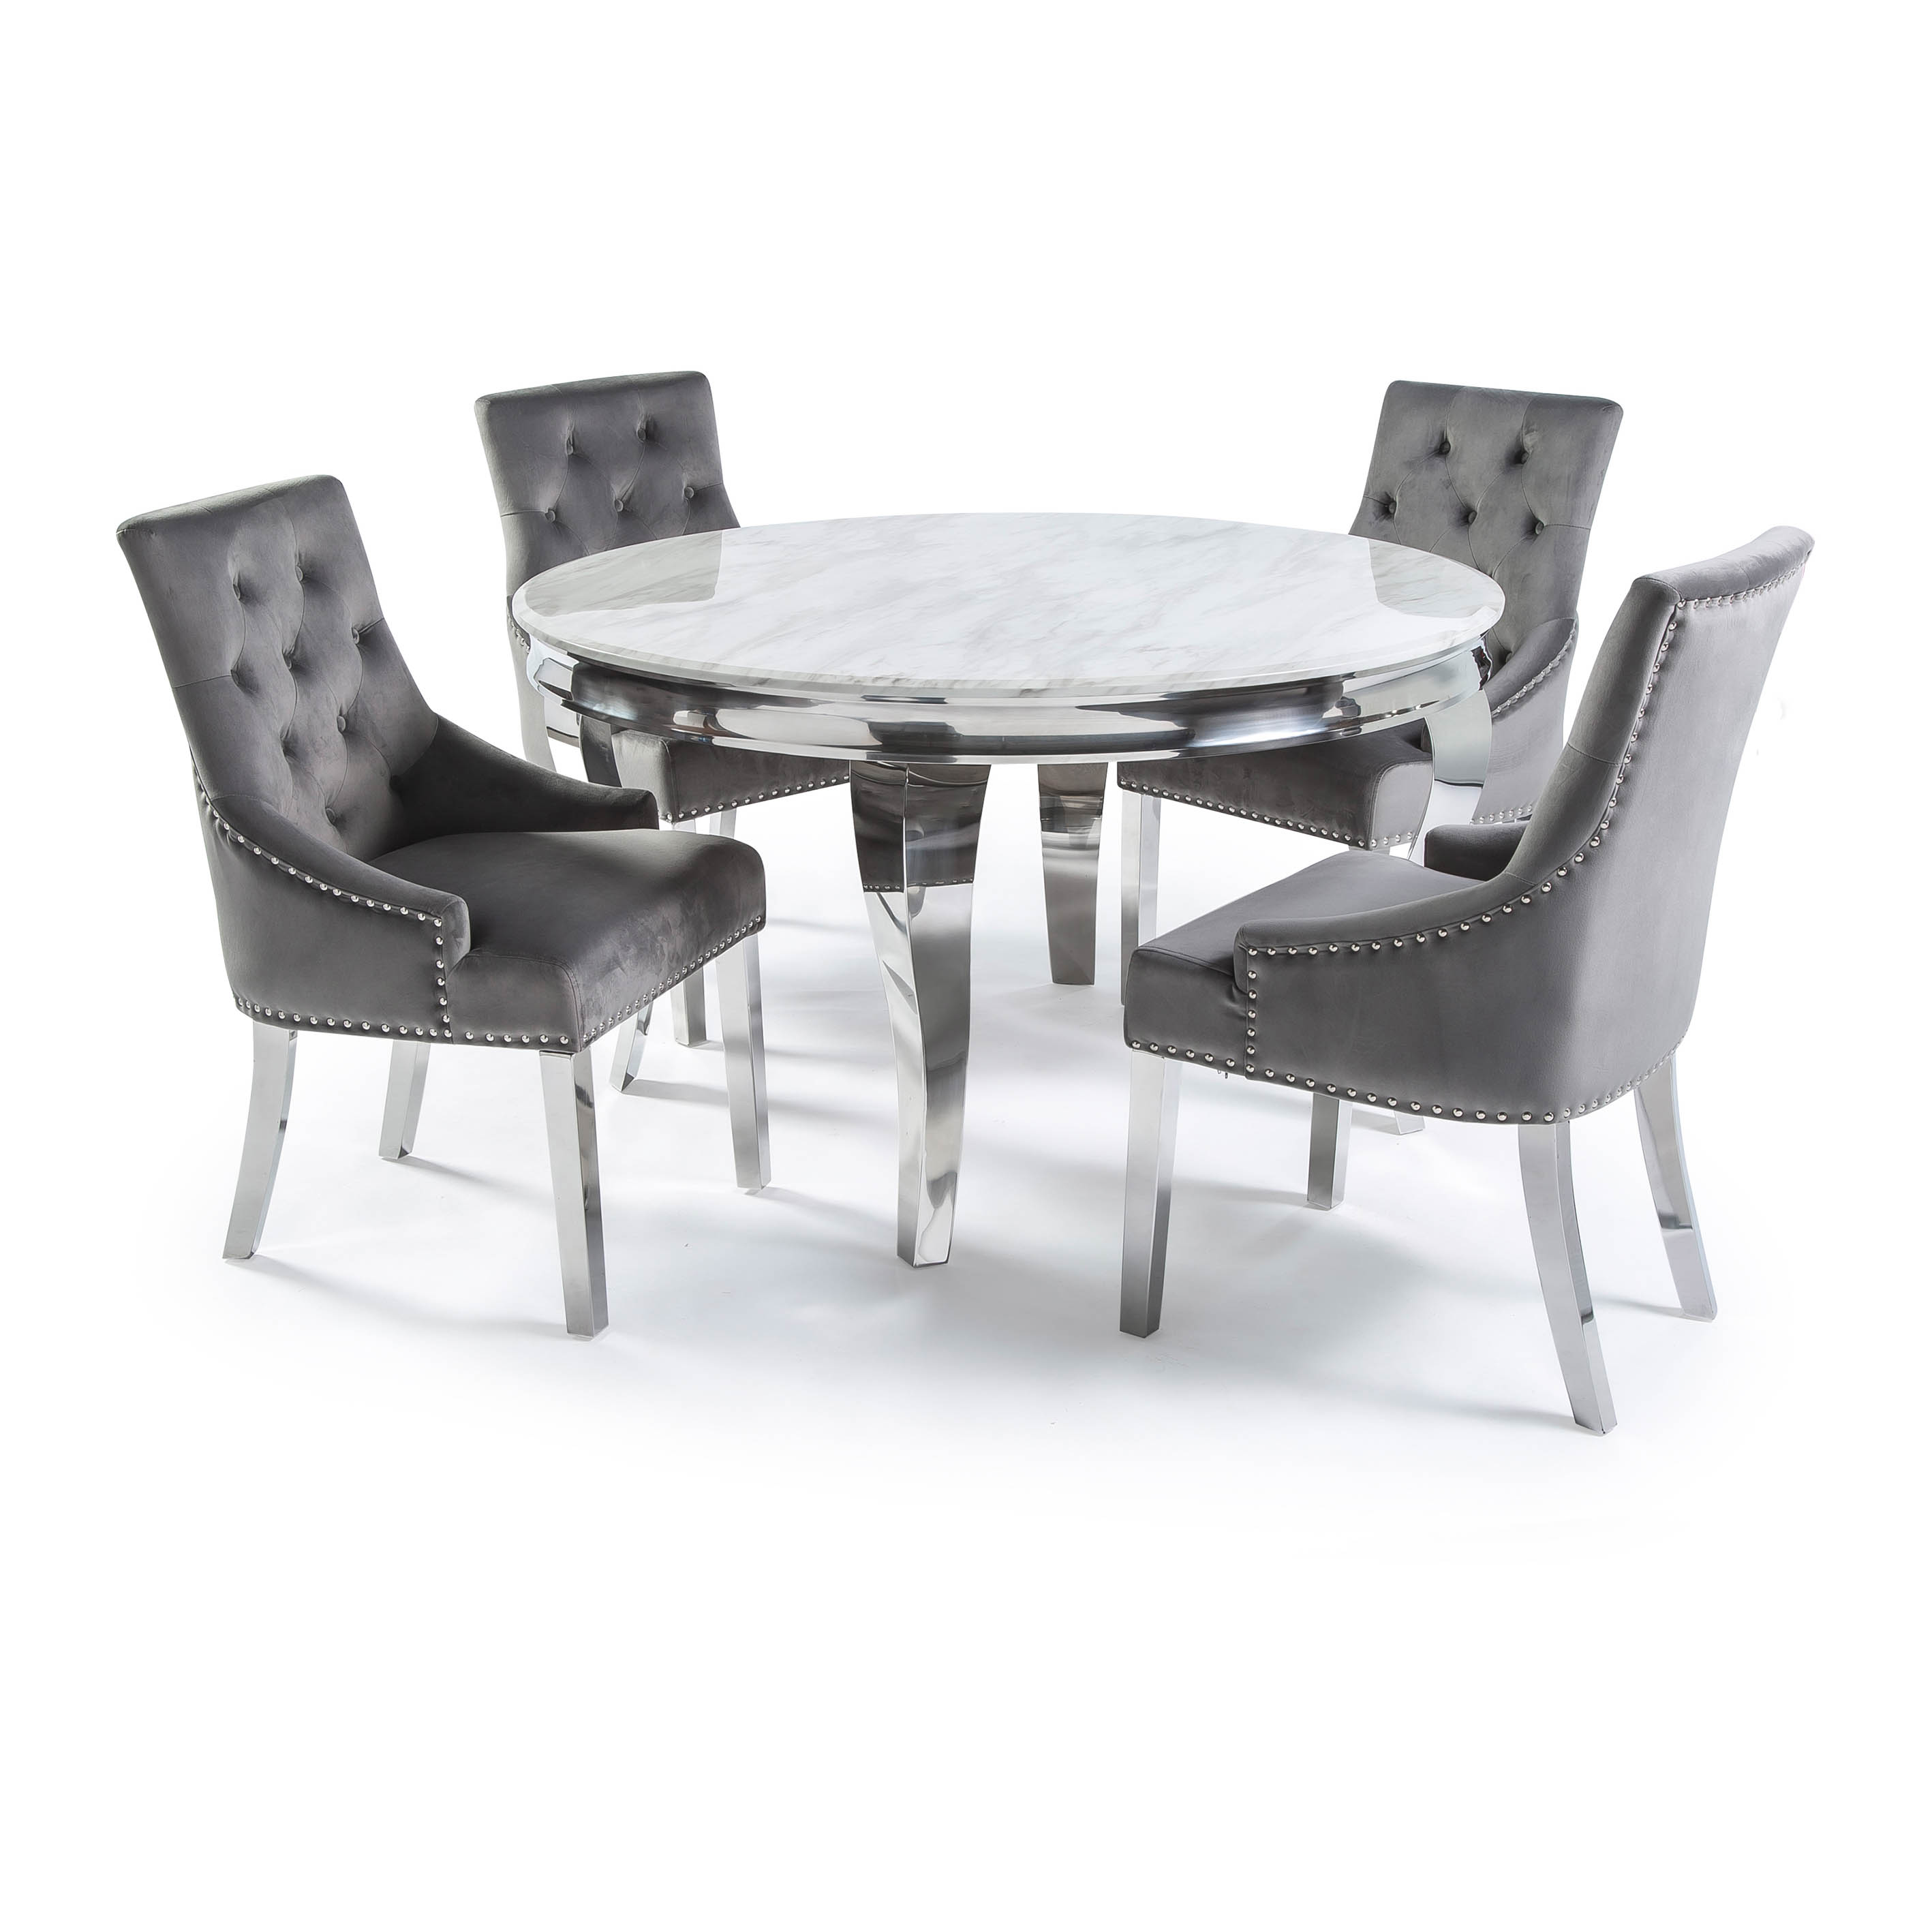 1.3m Circular Louis Polished Steel Dining White Marble Table Set with 4 Grey Brushed Velvet Dining Chair – Plain